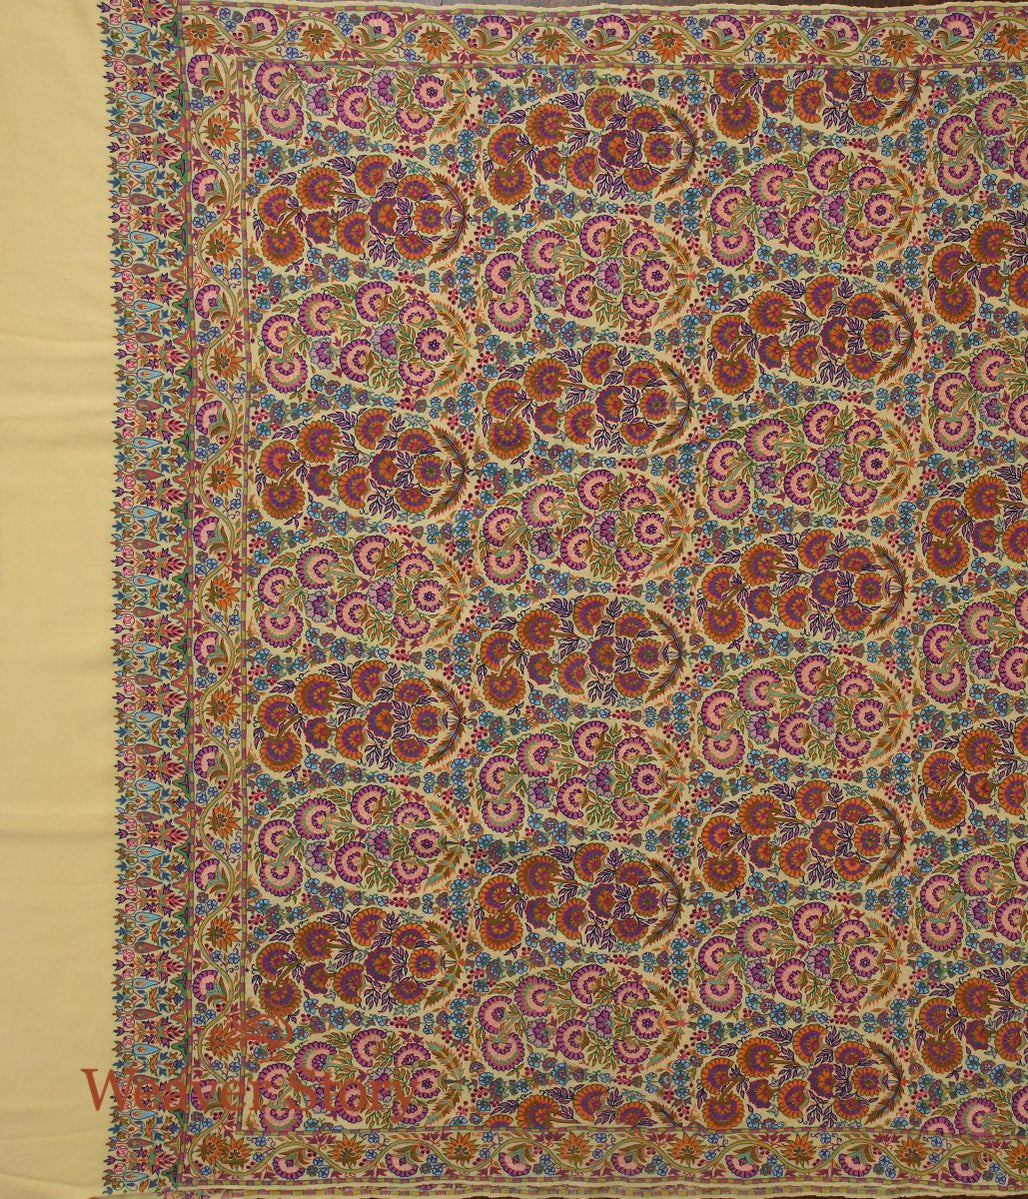 Lemon Yellow Pure Pashmina Shwal with Kalamkari